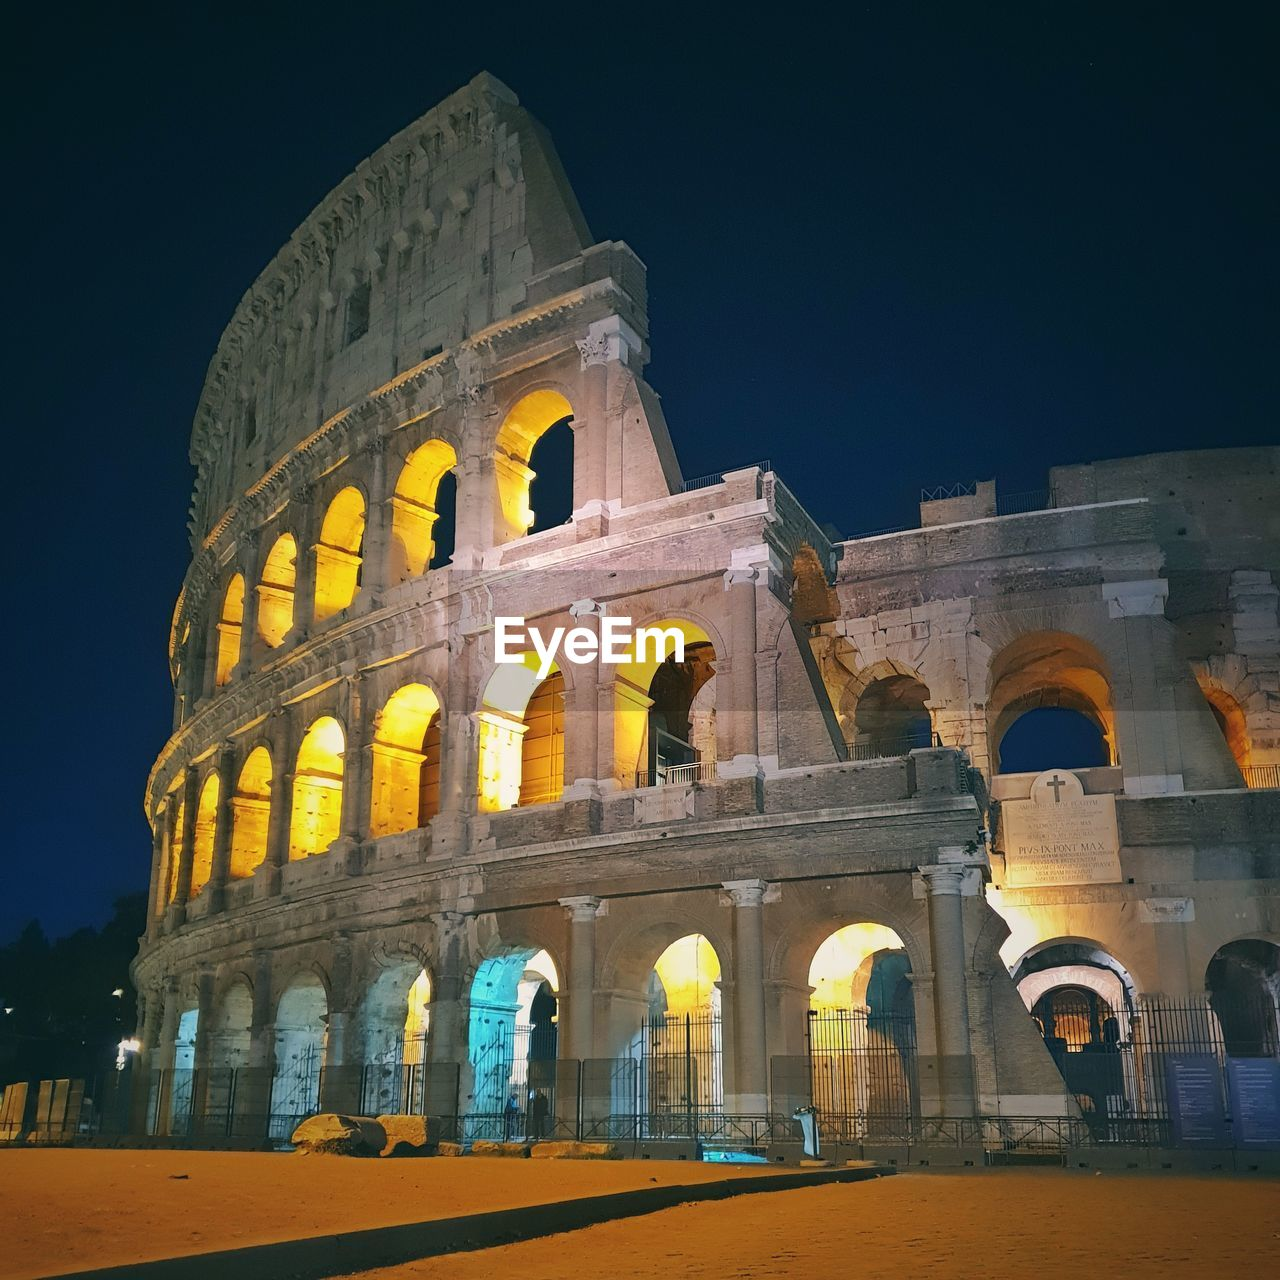 history, architecture, arch, built structure, the past, tourism, travel, travel destinations, building exterior, ancient, sky, night, amphitheater, nature, city, arts culture and entertainment, old ruin, illuminated, low angle view, ancient civilization, no people, outdoors, archaeology, arched